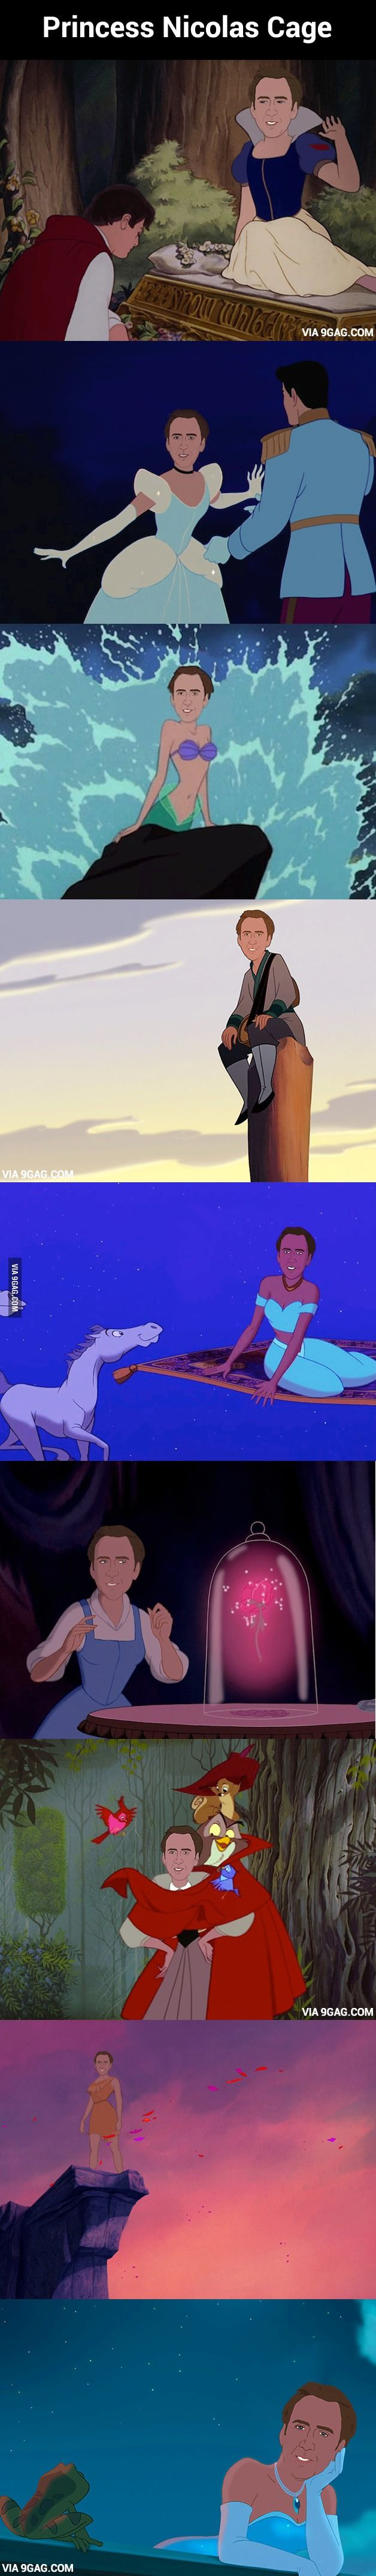 Nicolas Cage as Disney princesses....I laughed harder than necessary at this...XD